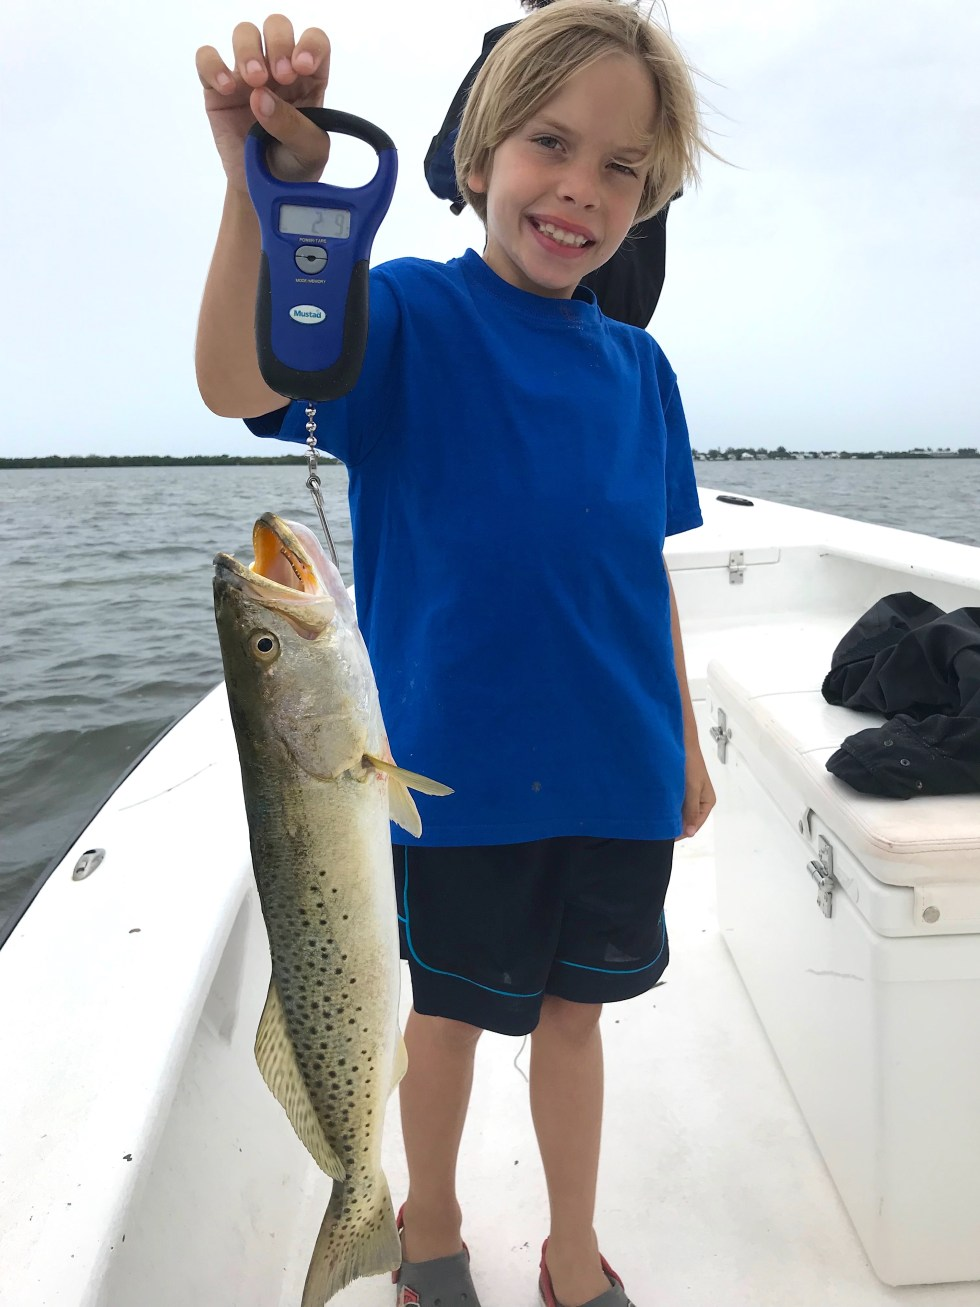 SeaTrout, Catch & Release, Sanibel Island Fishing Charters & Captiva Island Fishing Charters, Sanibel Island, Tuesday, May 29, 2018.